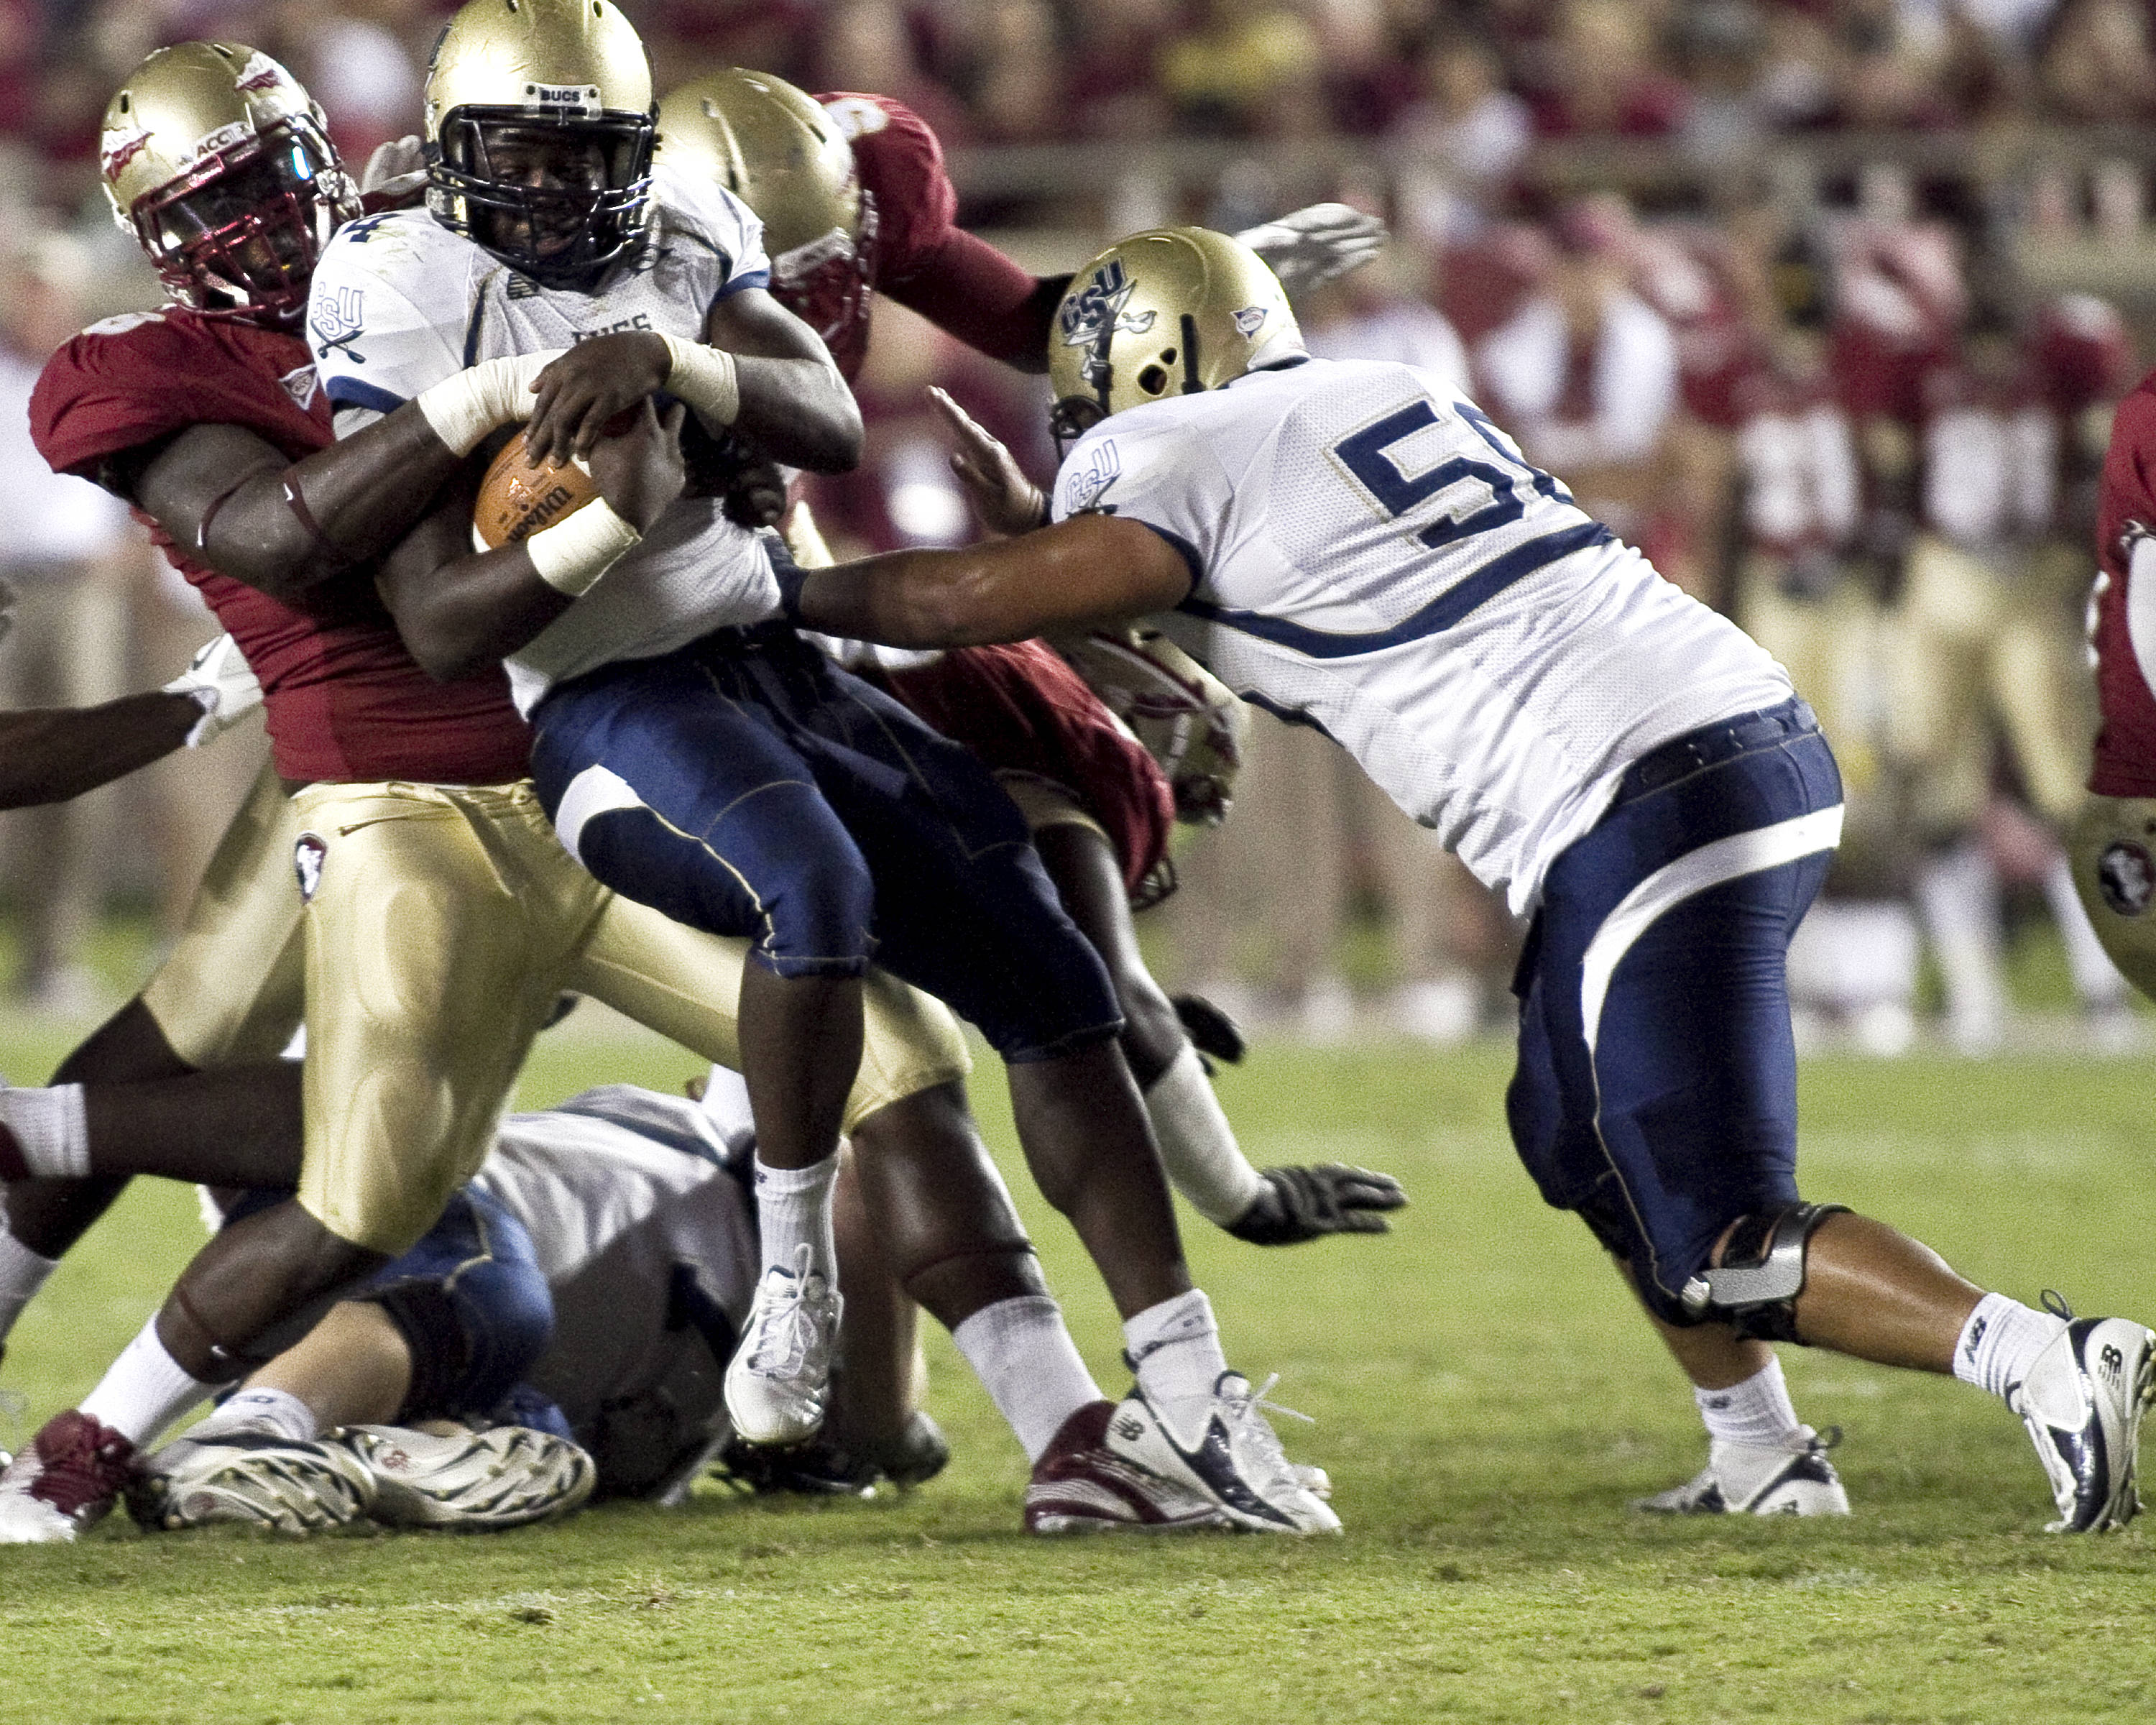 Defensive tackle Cameron Erving (98) with a tackle